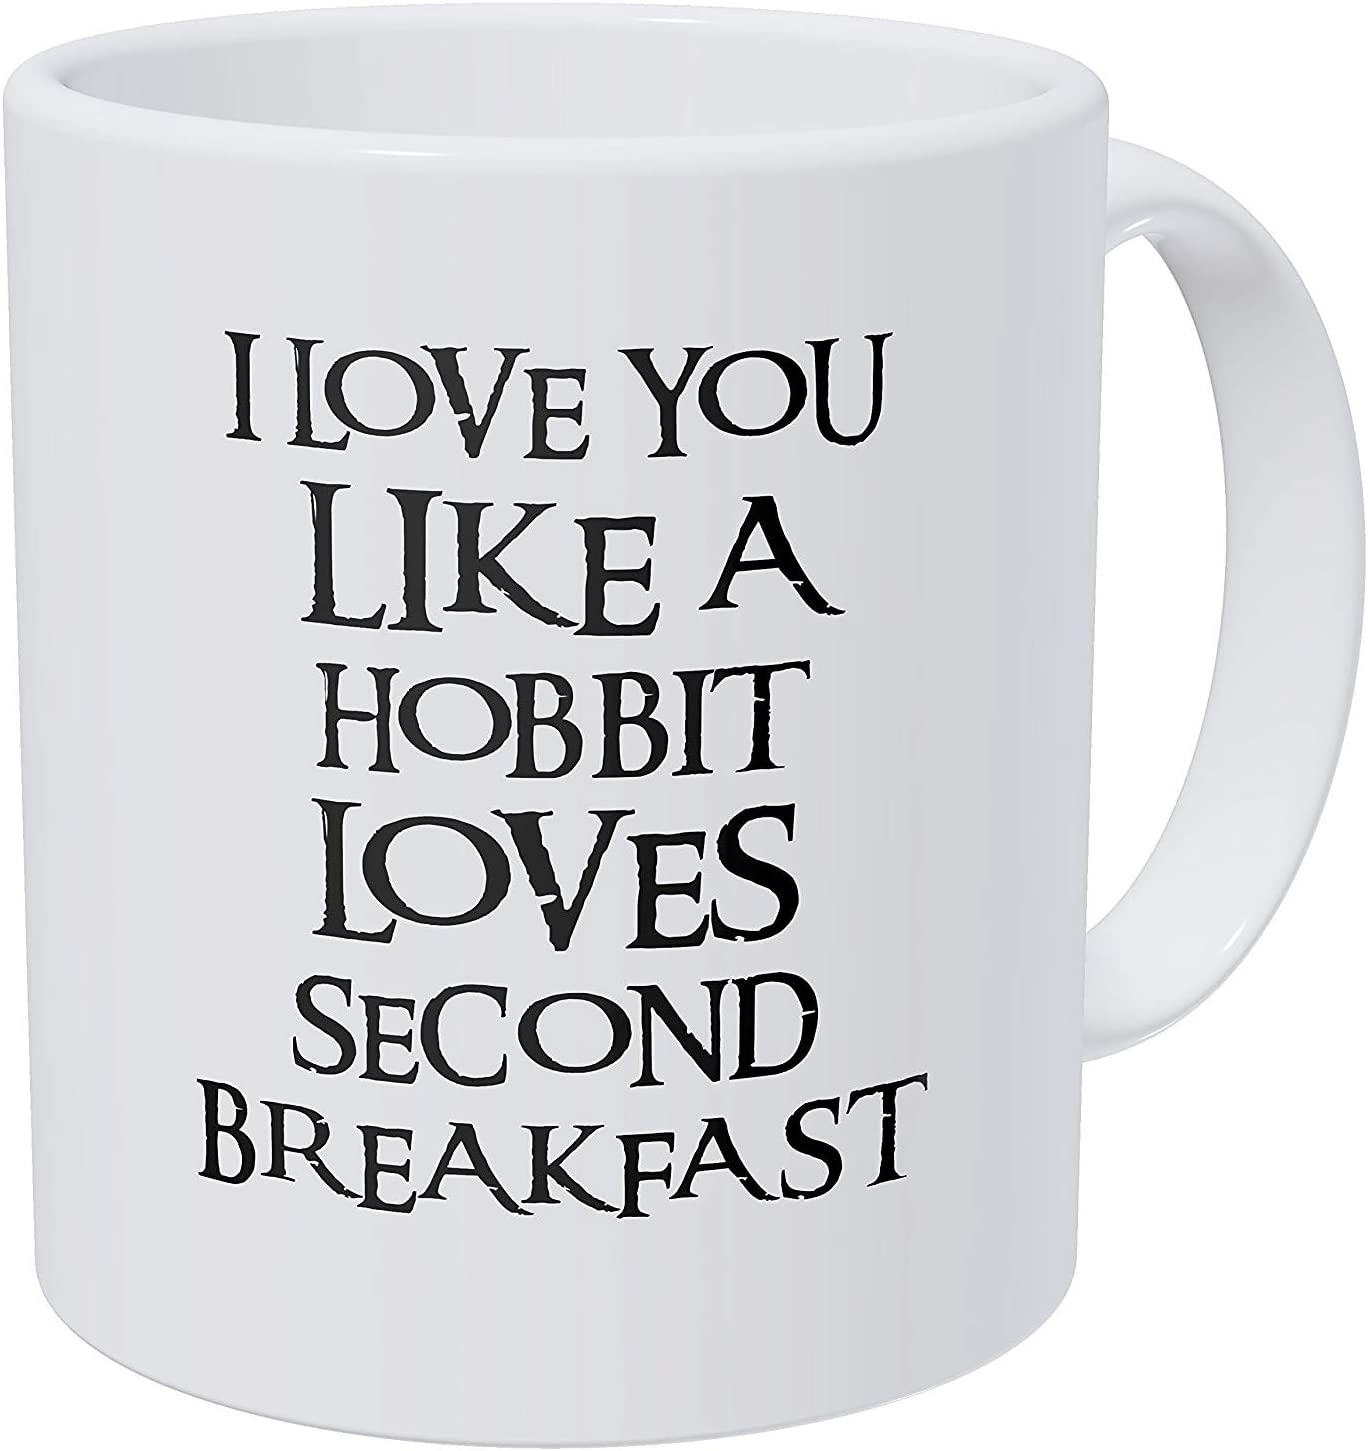 A Mug To Keep I Love You Like A Hobbit Loves Seond Breakfast, 11 Ounces Funny Coffee Mug